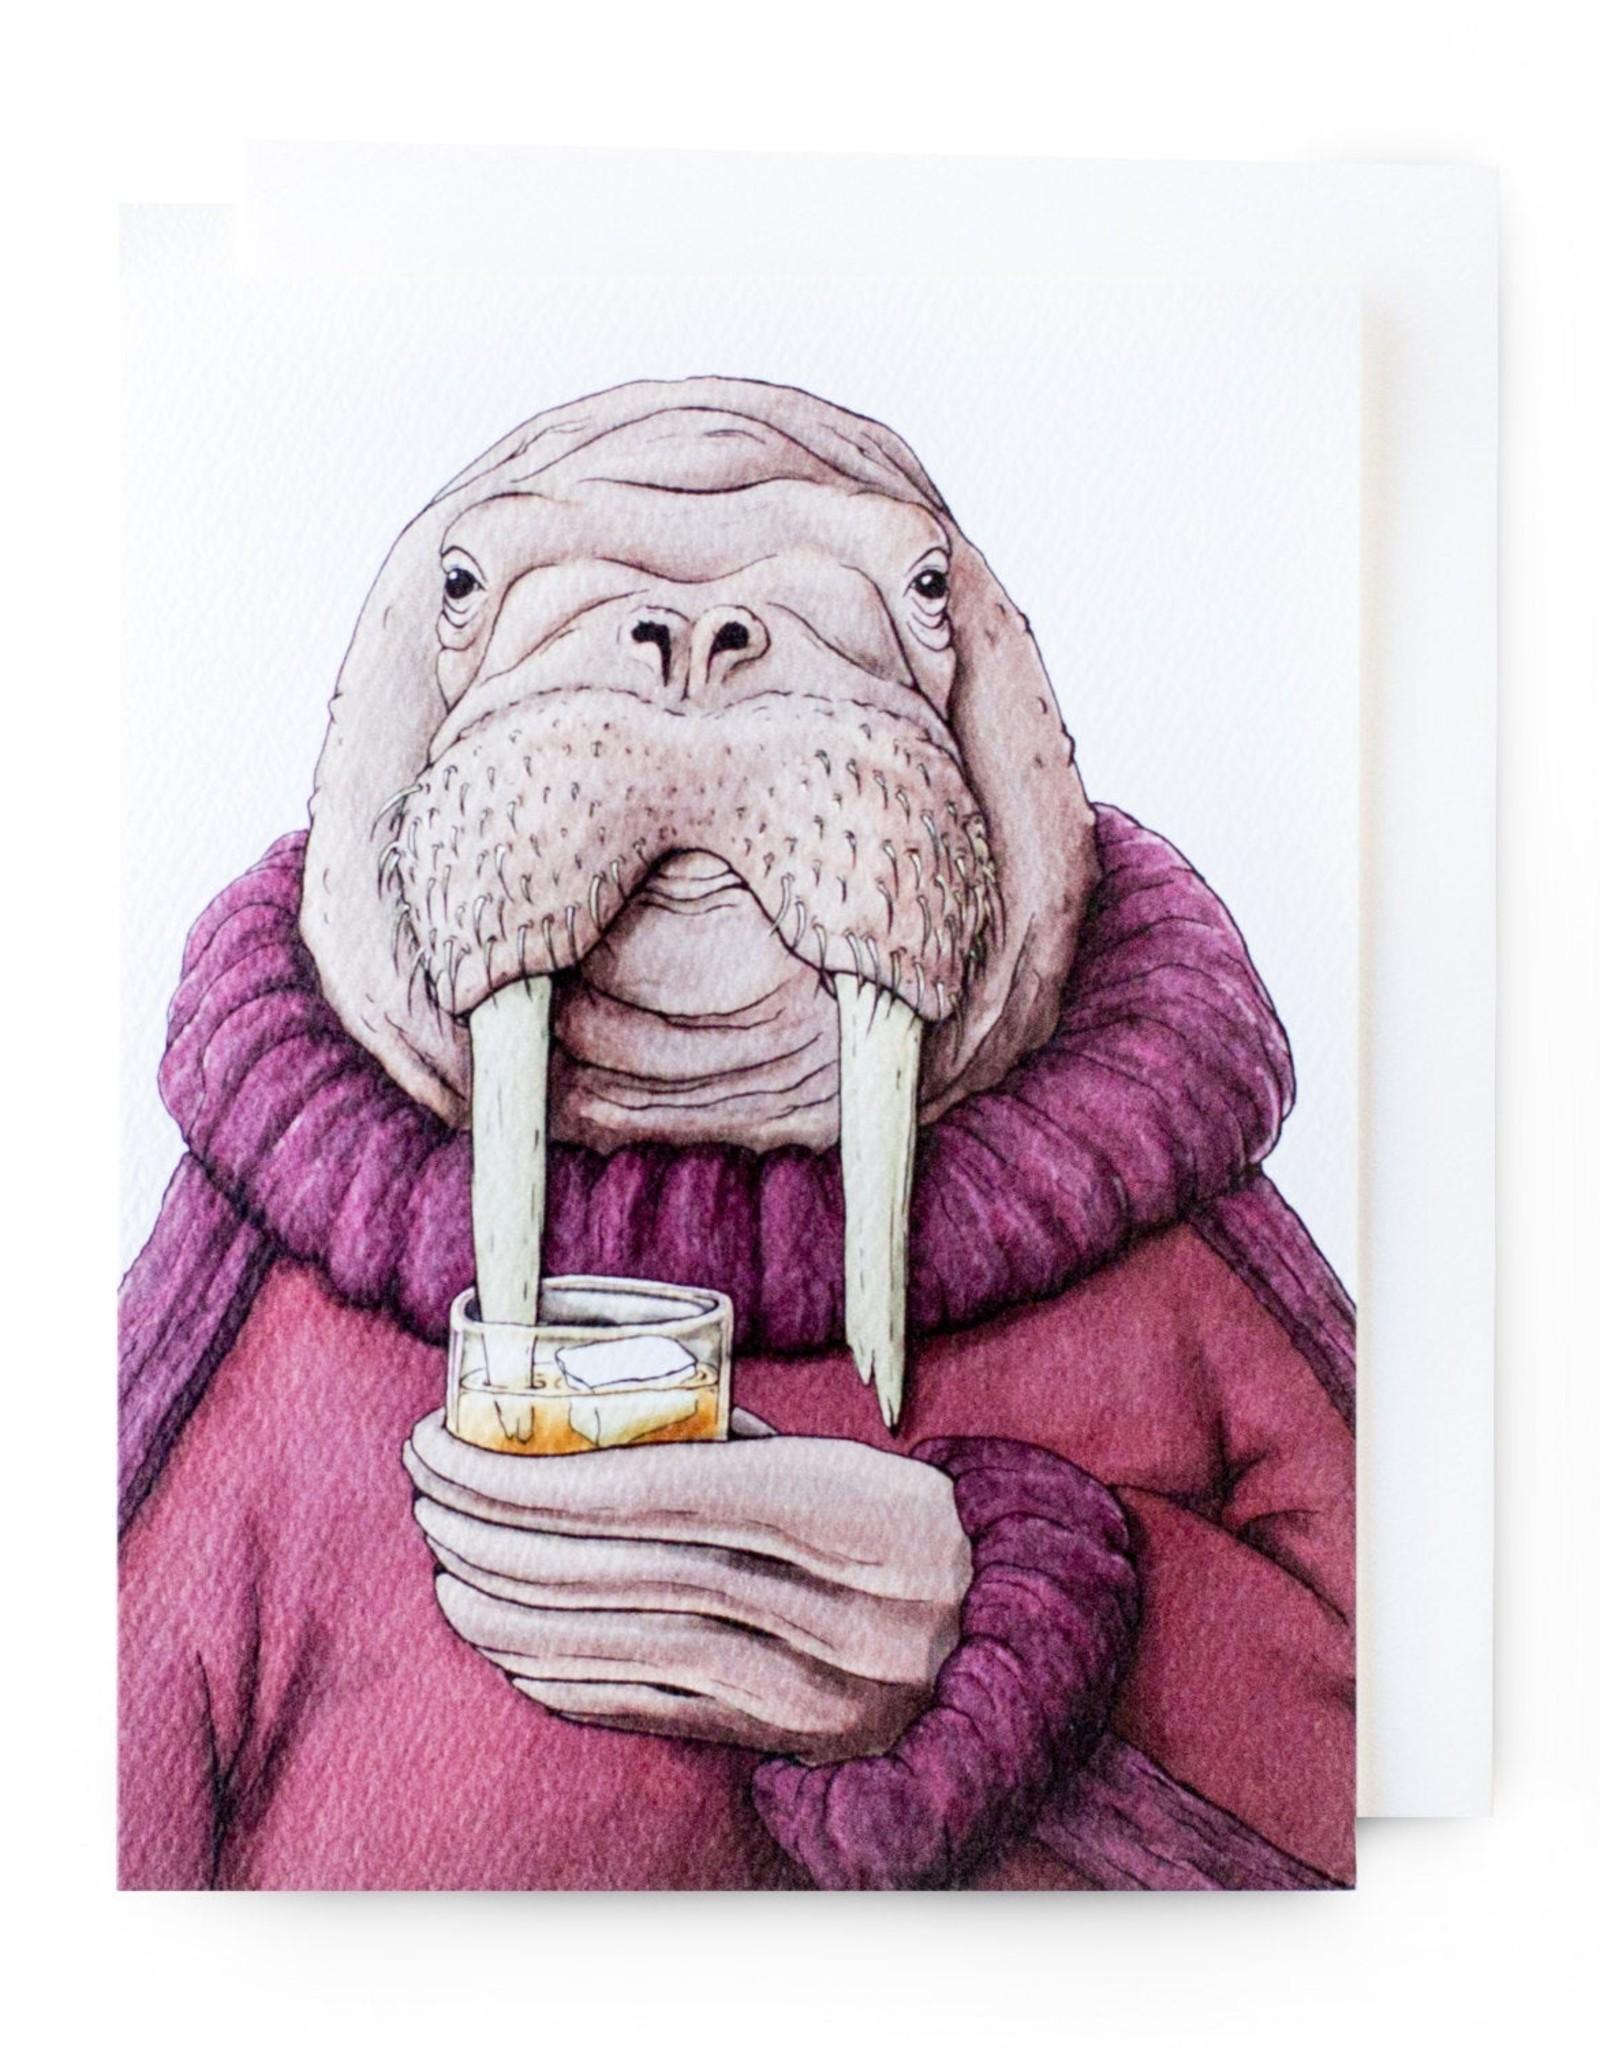 Serious Creatures Greeting Cards by Serious Creatures